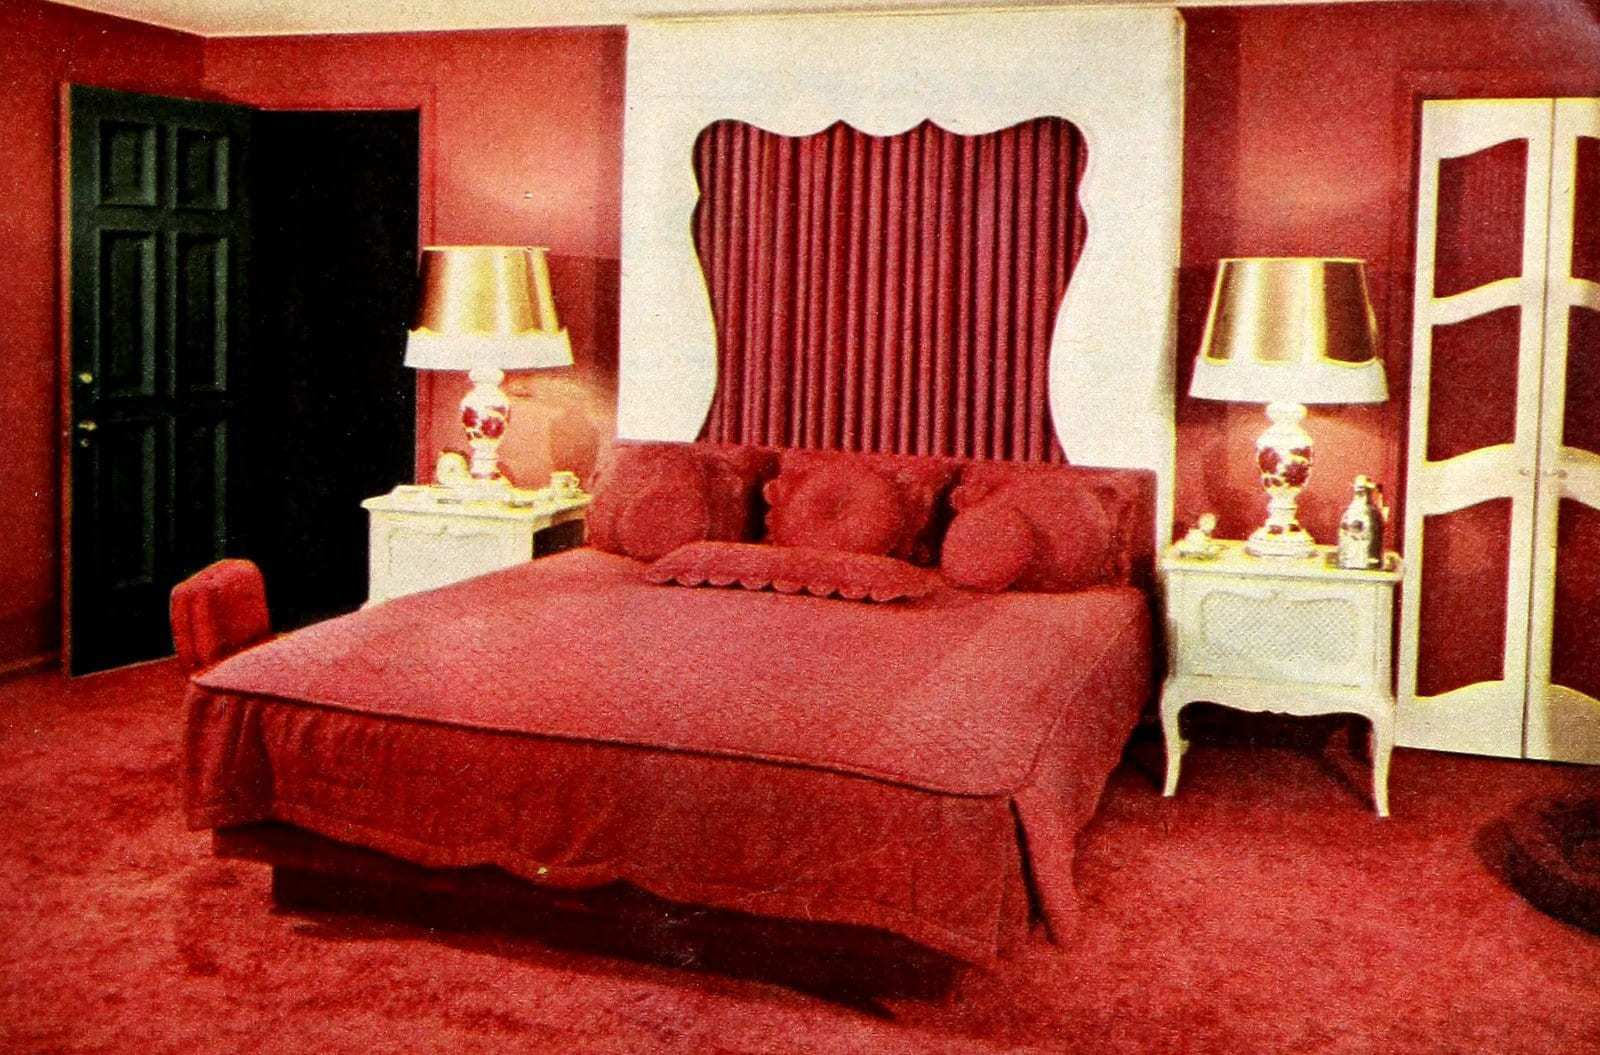 Vintage 50s master bedroom with red decor